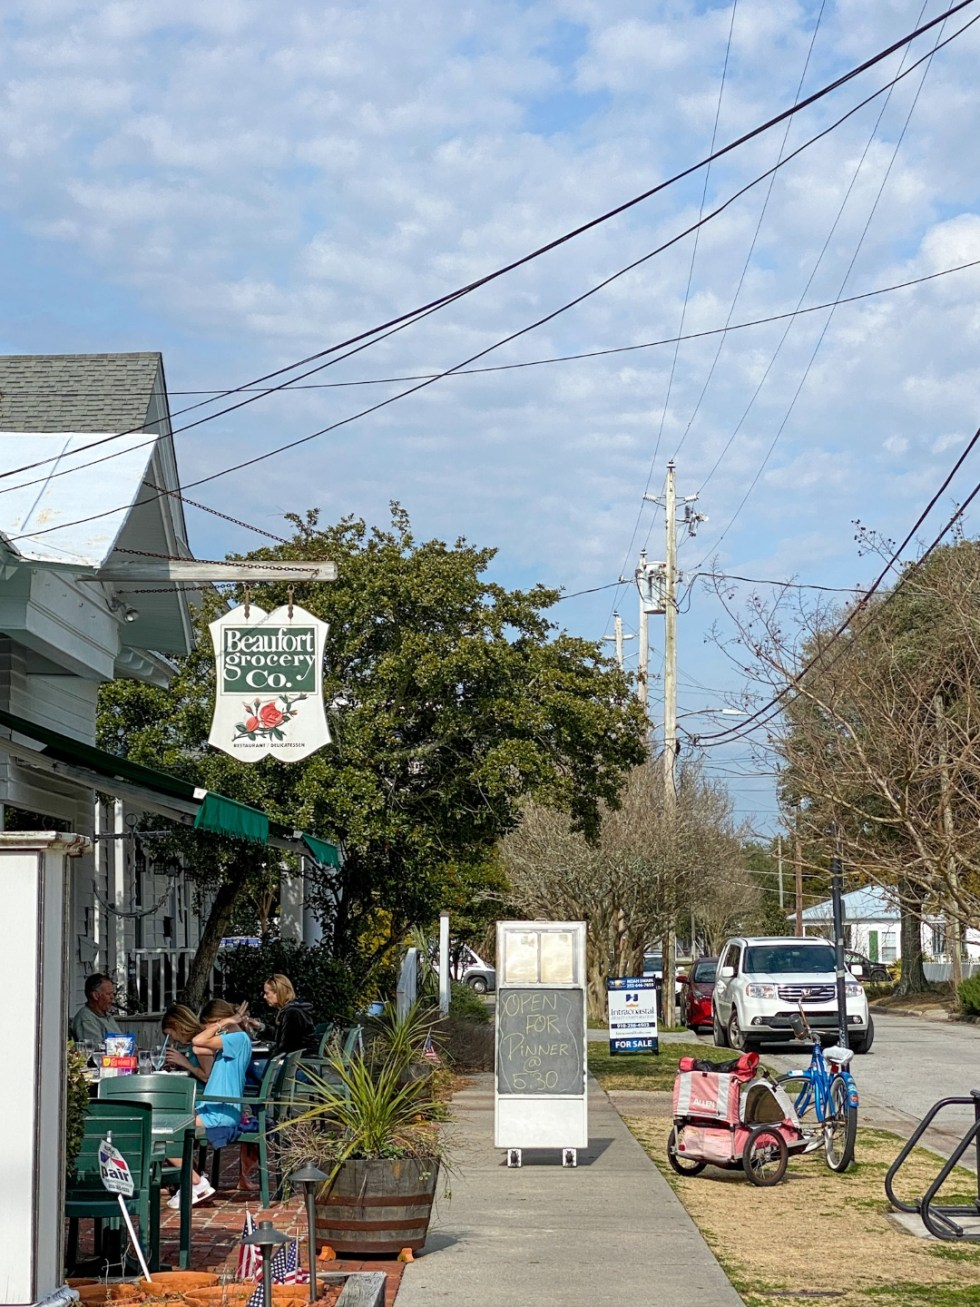 Weekend Travel: The Best Things to Do in Beaufort NC in 48 Hours - I'm Fixin' To - @imfixintoblog |Things to Do in Beaufort NC by popular NC travel blog, I'm Fixin' To: image of Beaufort Grocery Co.